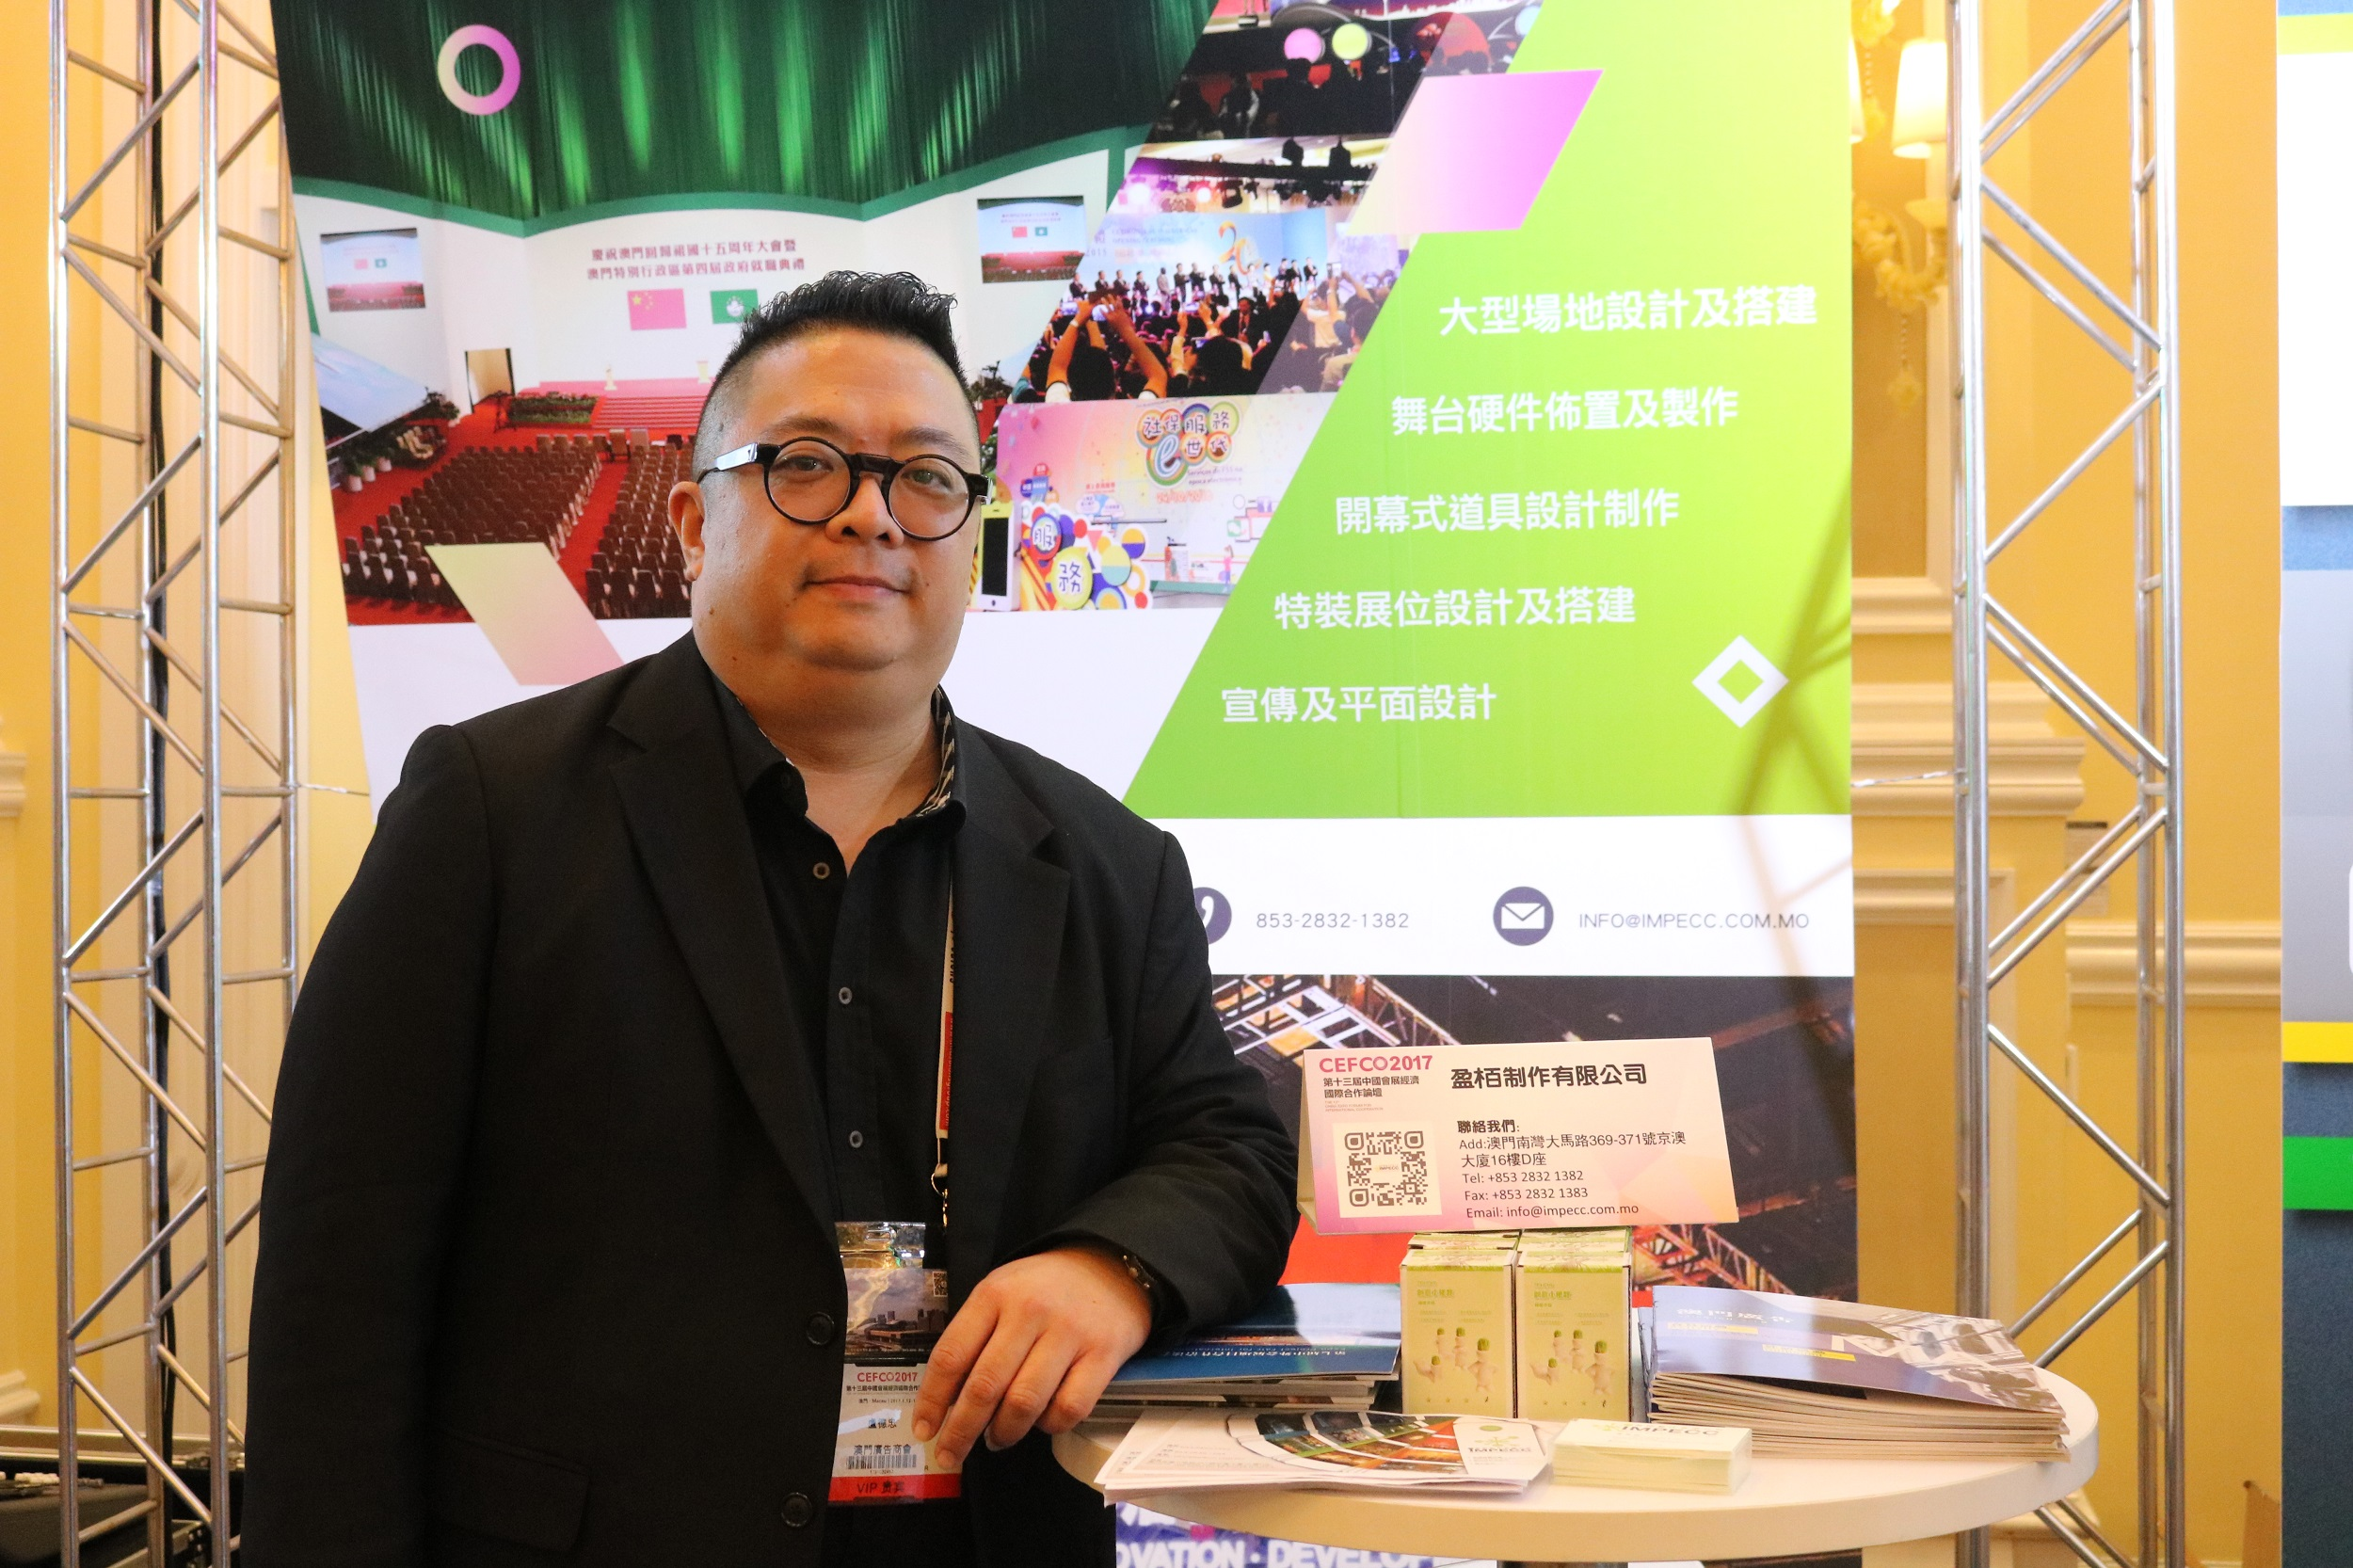 Mr. Lo Tak Chong, Chairman of Board of Directors of Association of the Advertising Agents of Macau